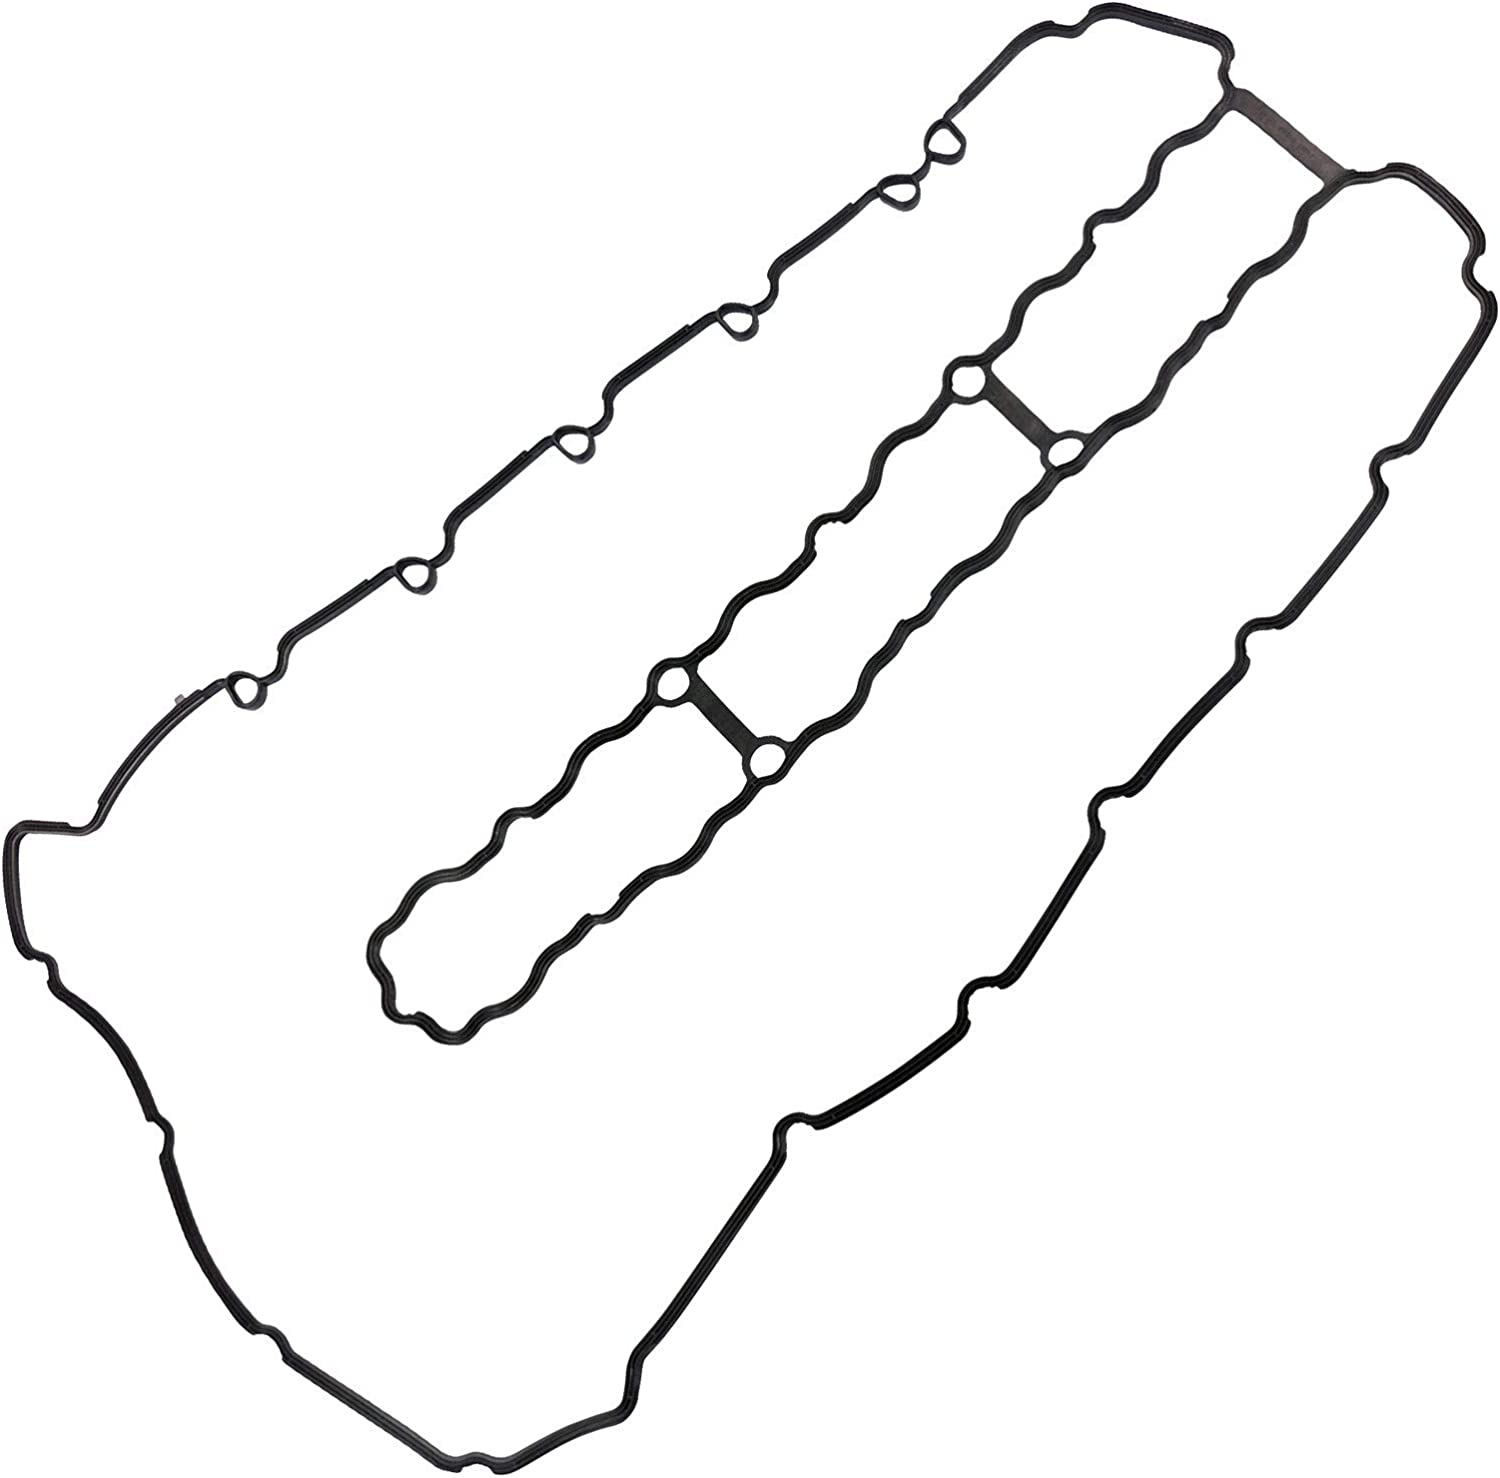 Elring Replacement Rocker Cover Gasket 740.210